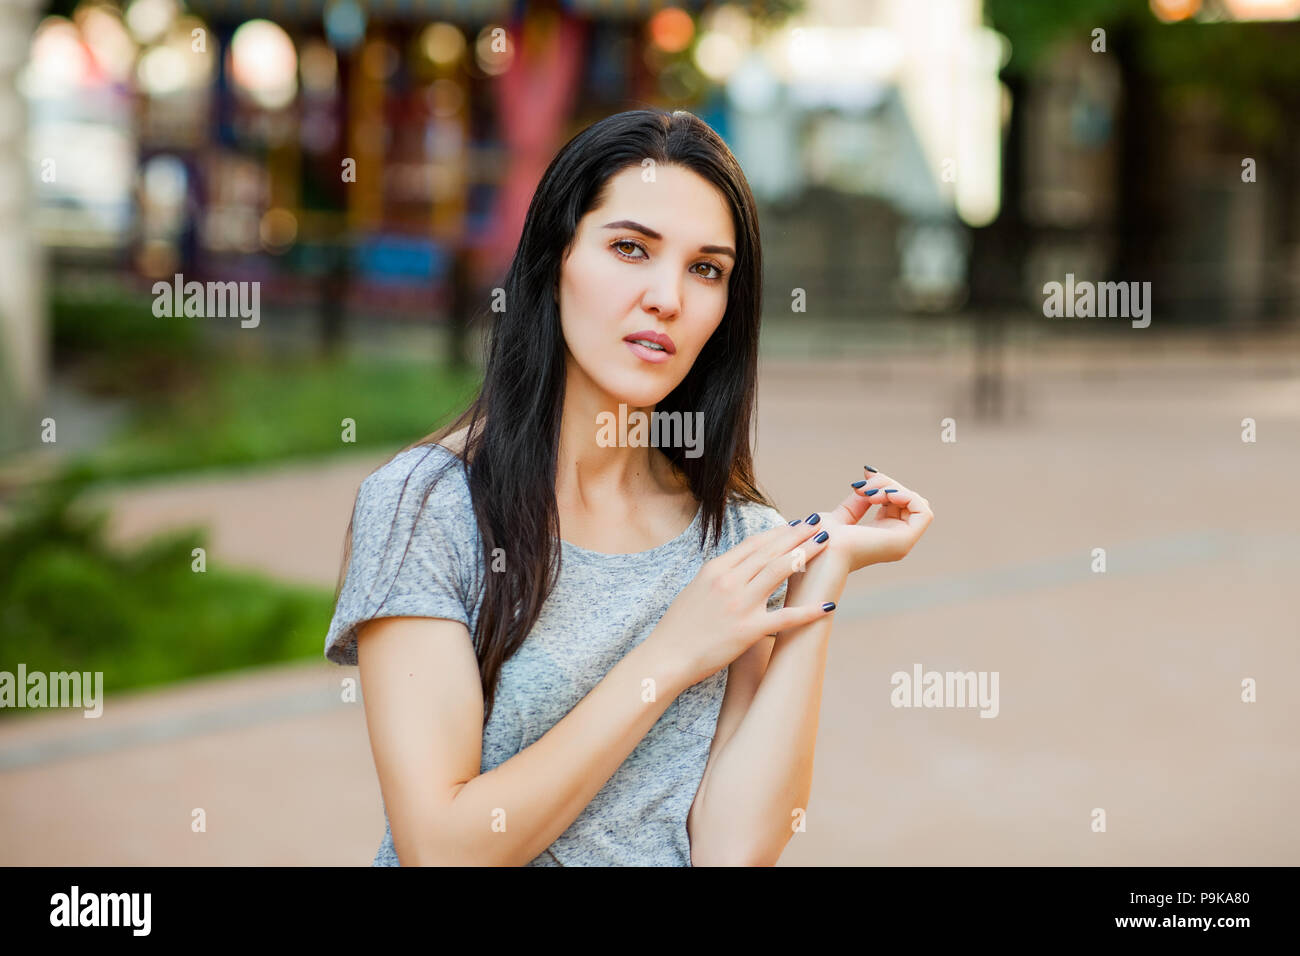 thoughtfull woman in the street - Stock Image